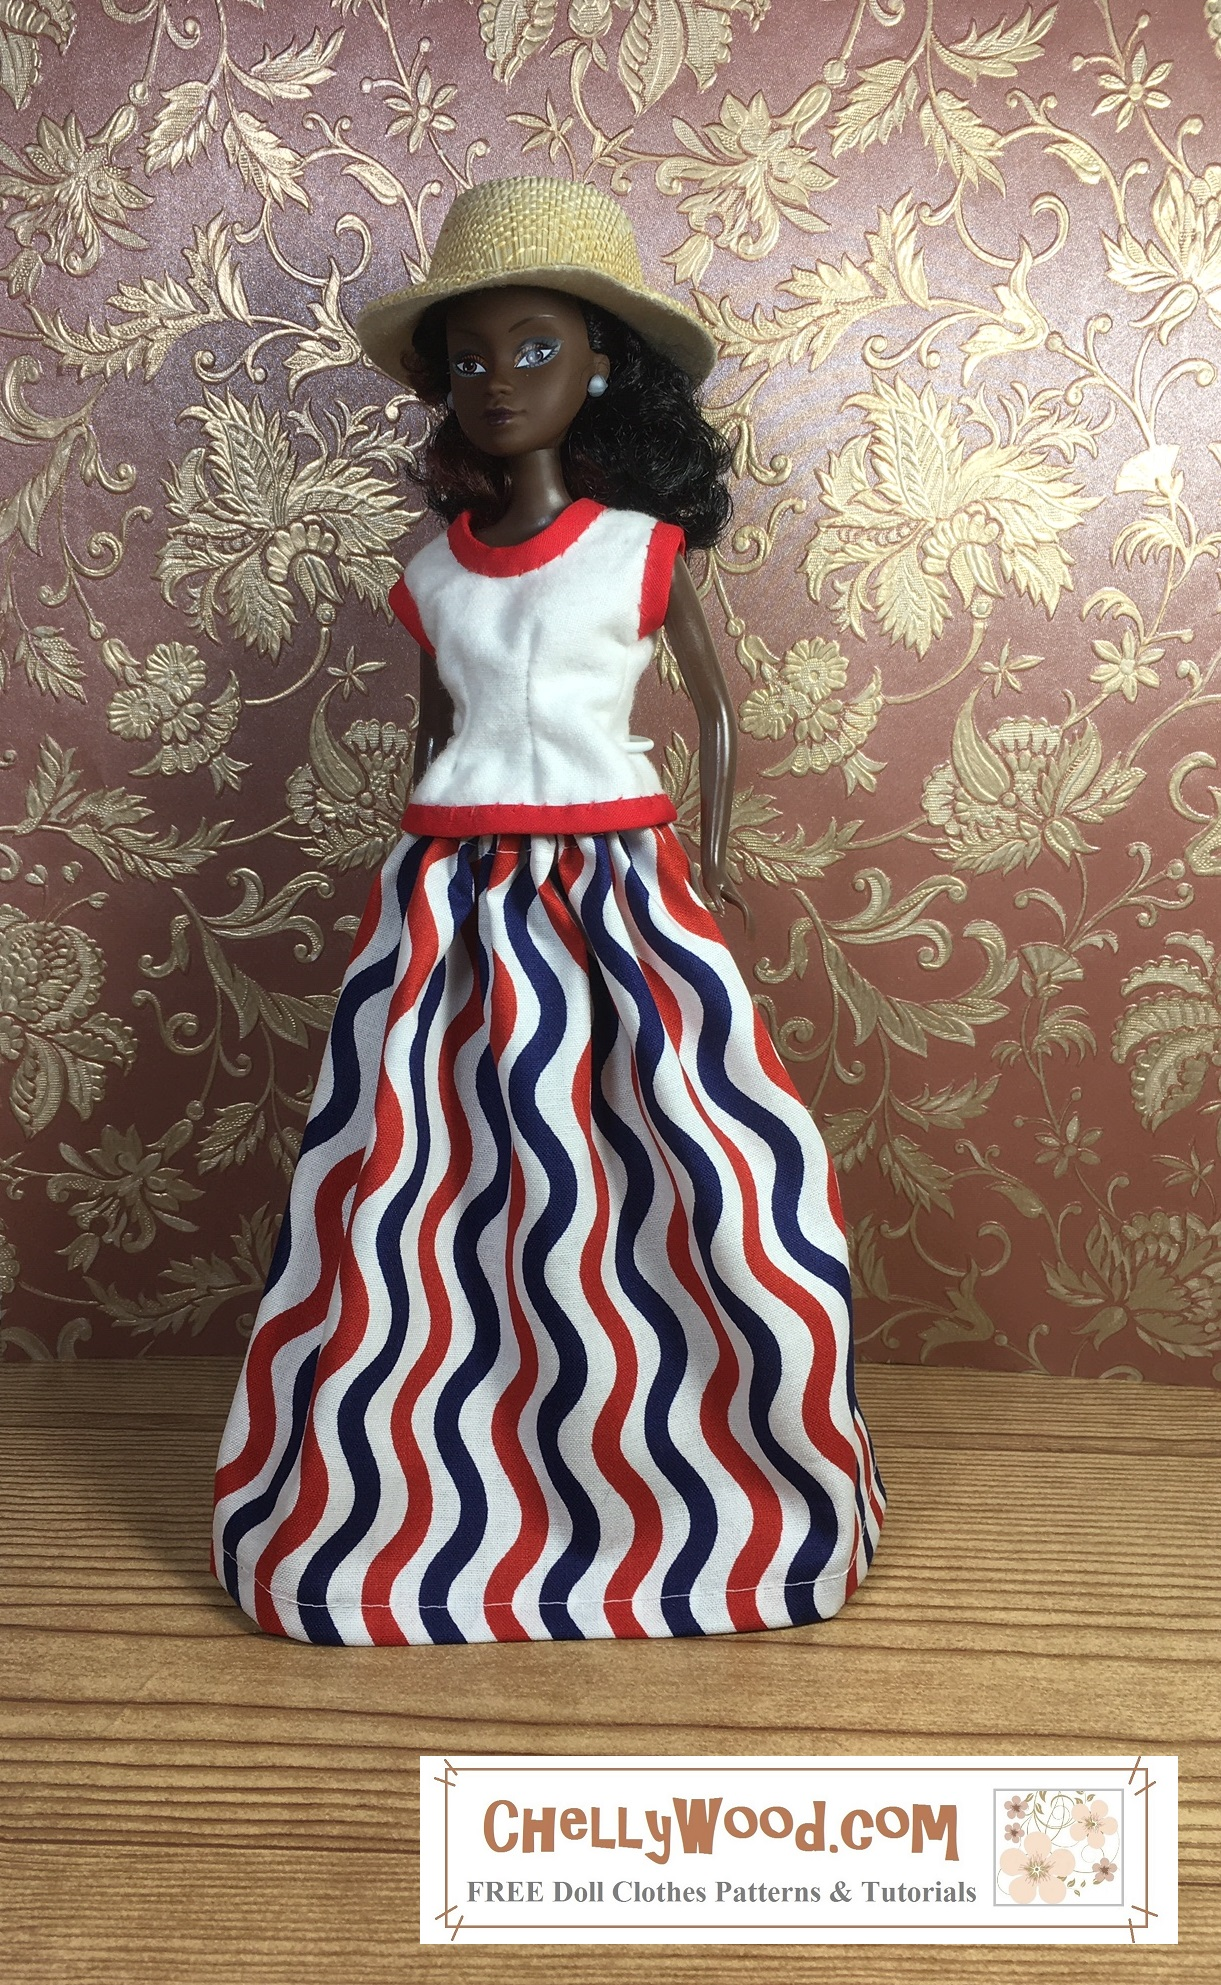 A lovely African or African-American doll with black hair and chocolate complexion stands before a gold-leafy wallpaper on a hard wood floor. She wears a straw hat and a long skirt with sleeveless top. The long skirt is made of a red, white, and blue wavy-patterned flag-like fabric. The sleeveless top is white with red bias tape trim. This doll appears to look a lot like a Barbie doll. Click on the link in the caption, and it will take you to a page where you can download and print all the free printable sewing patterns for making these doll clothes, along with links to tutorial videos that show you how to make this outfit.